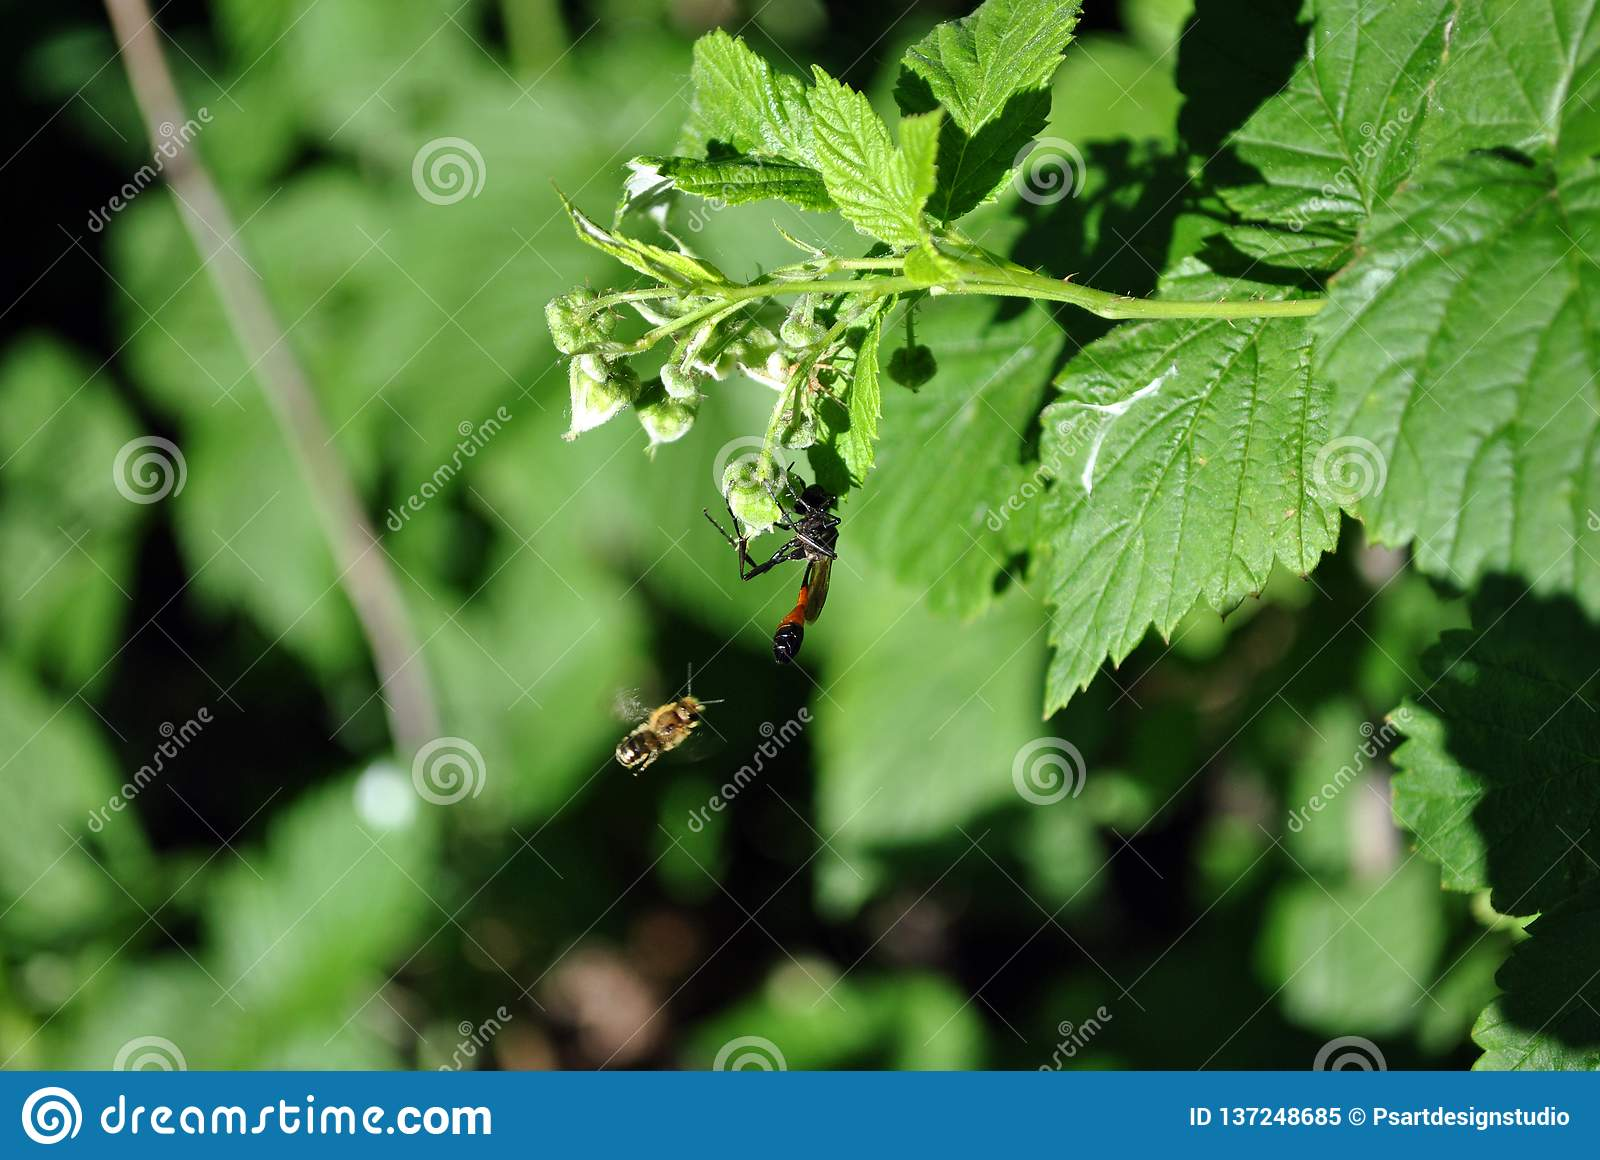 Raspberry flowers buds with wild wasp om it and bee flying near, green bush soft blurry bokeh